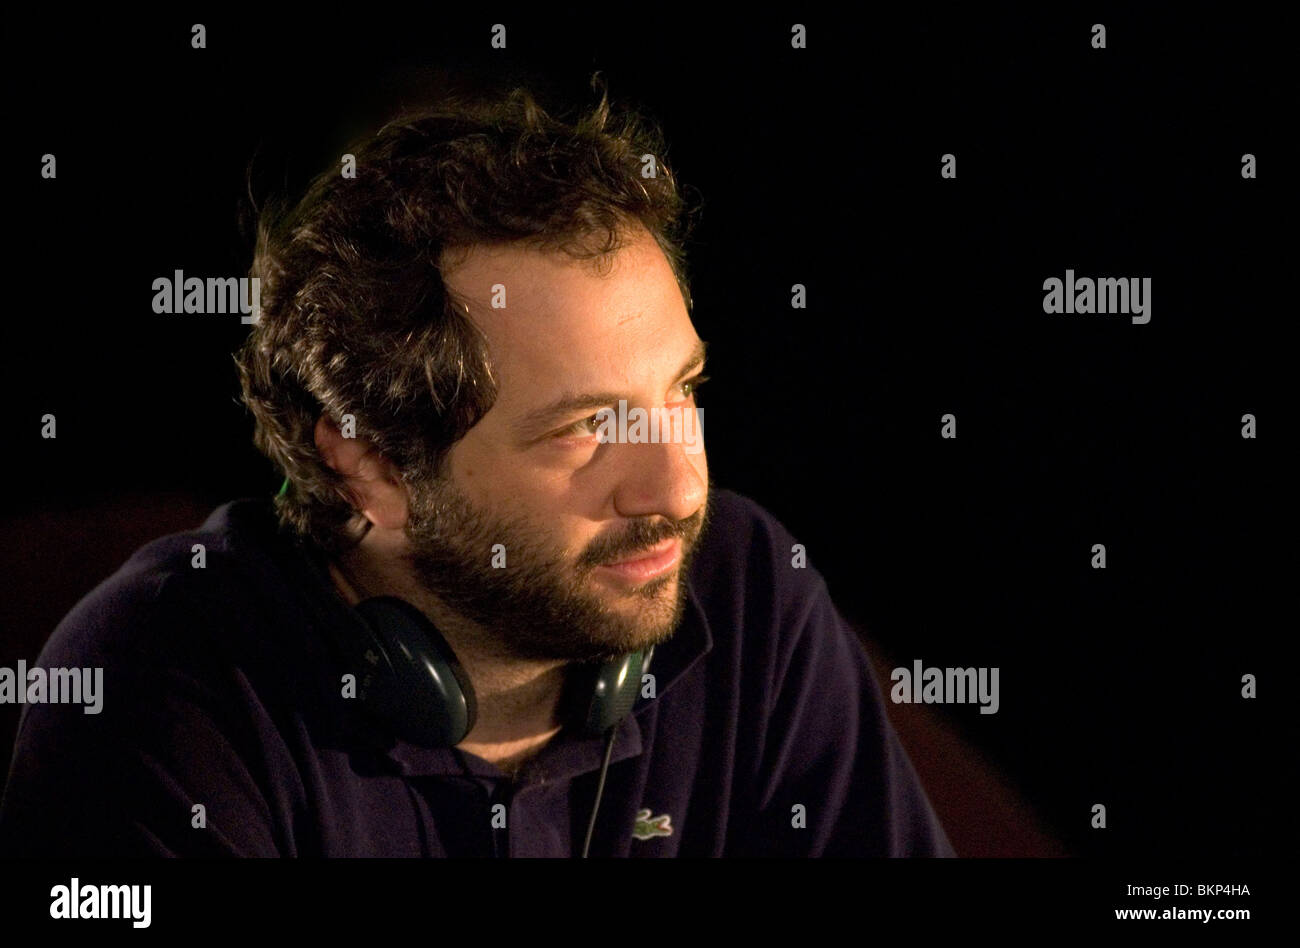 ON SET, FILMING (ALT), BEHIND THE SCENES, O/S 'KNOCKED UP' (2007) JUDD APATOW (DIR) KNOC 001-31 - Stock Image